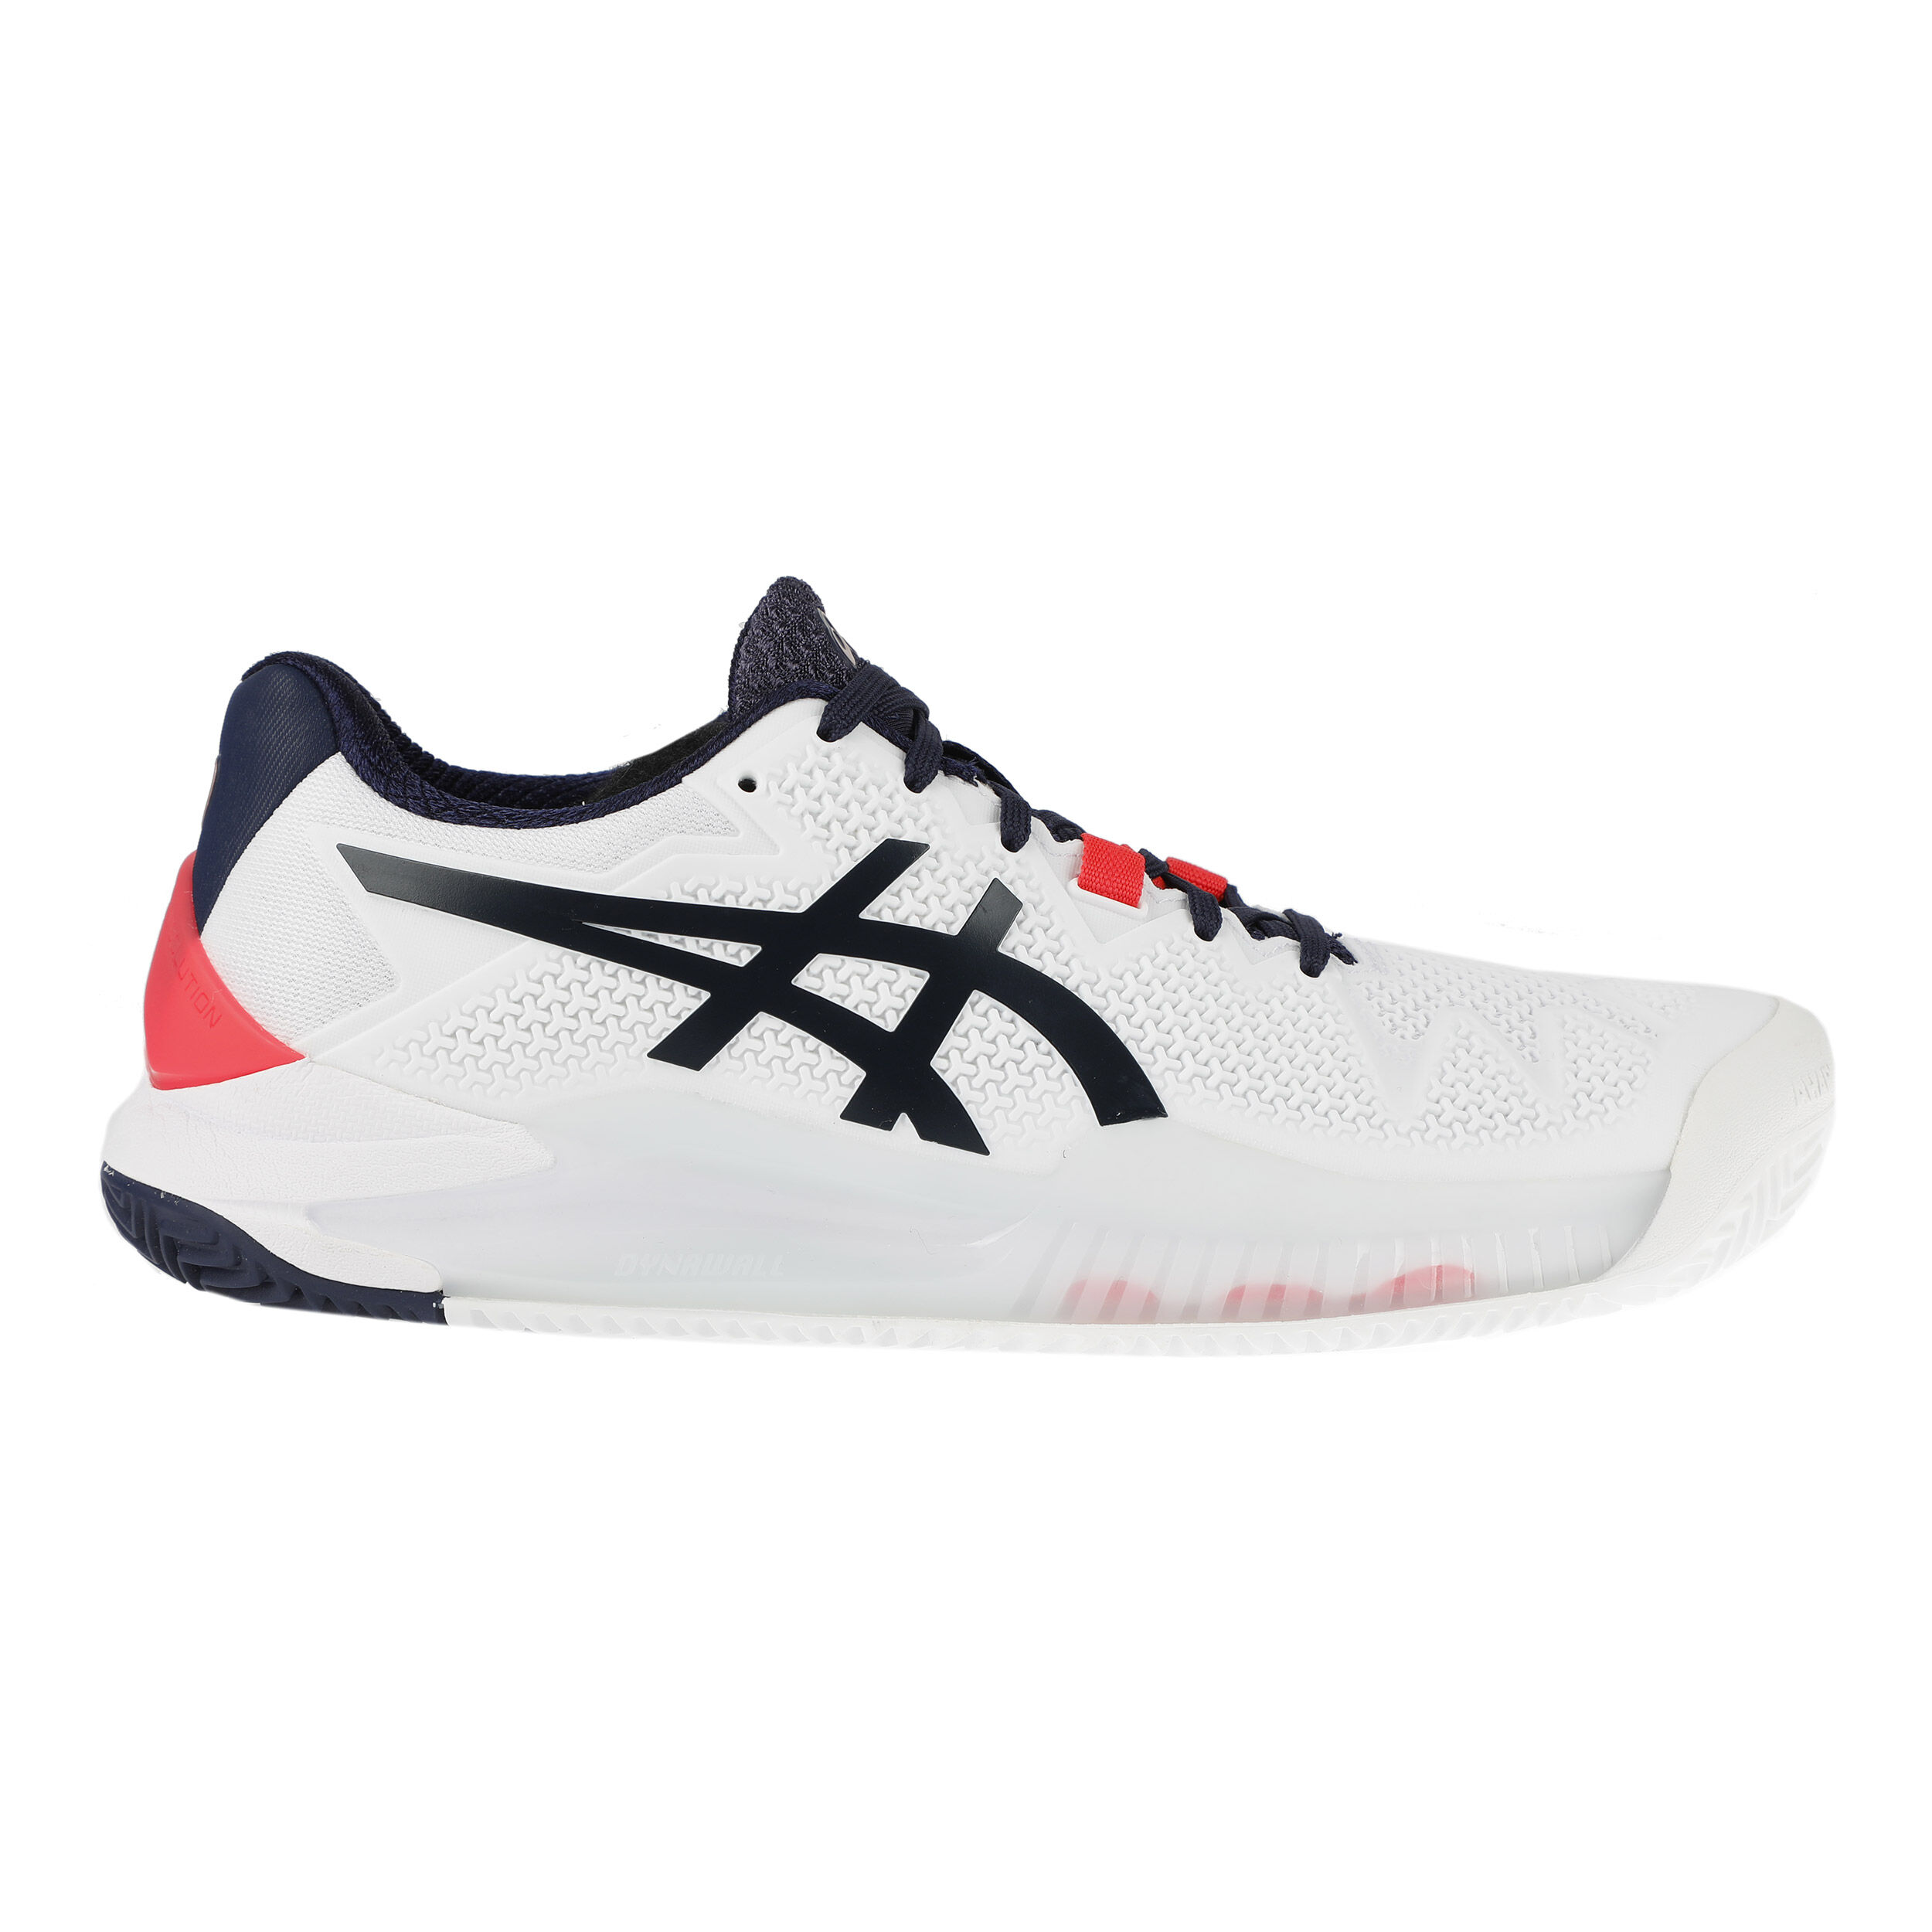 Asics Gel-Resolution 8 Clay Sandplatzschuh Damen - Weiß, Dunkelblau